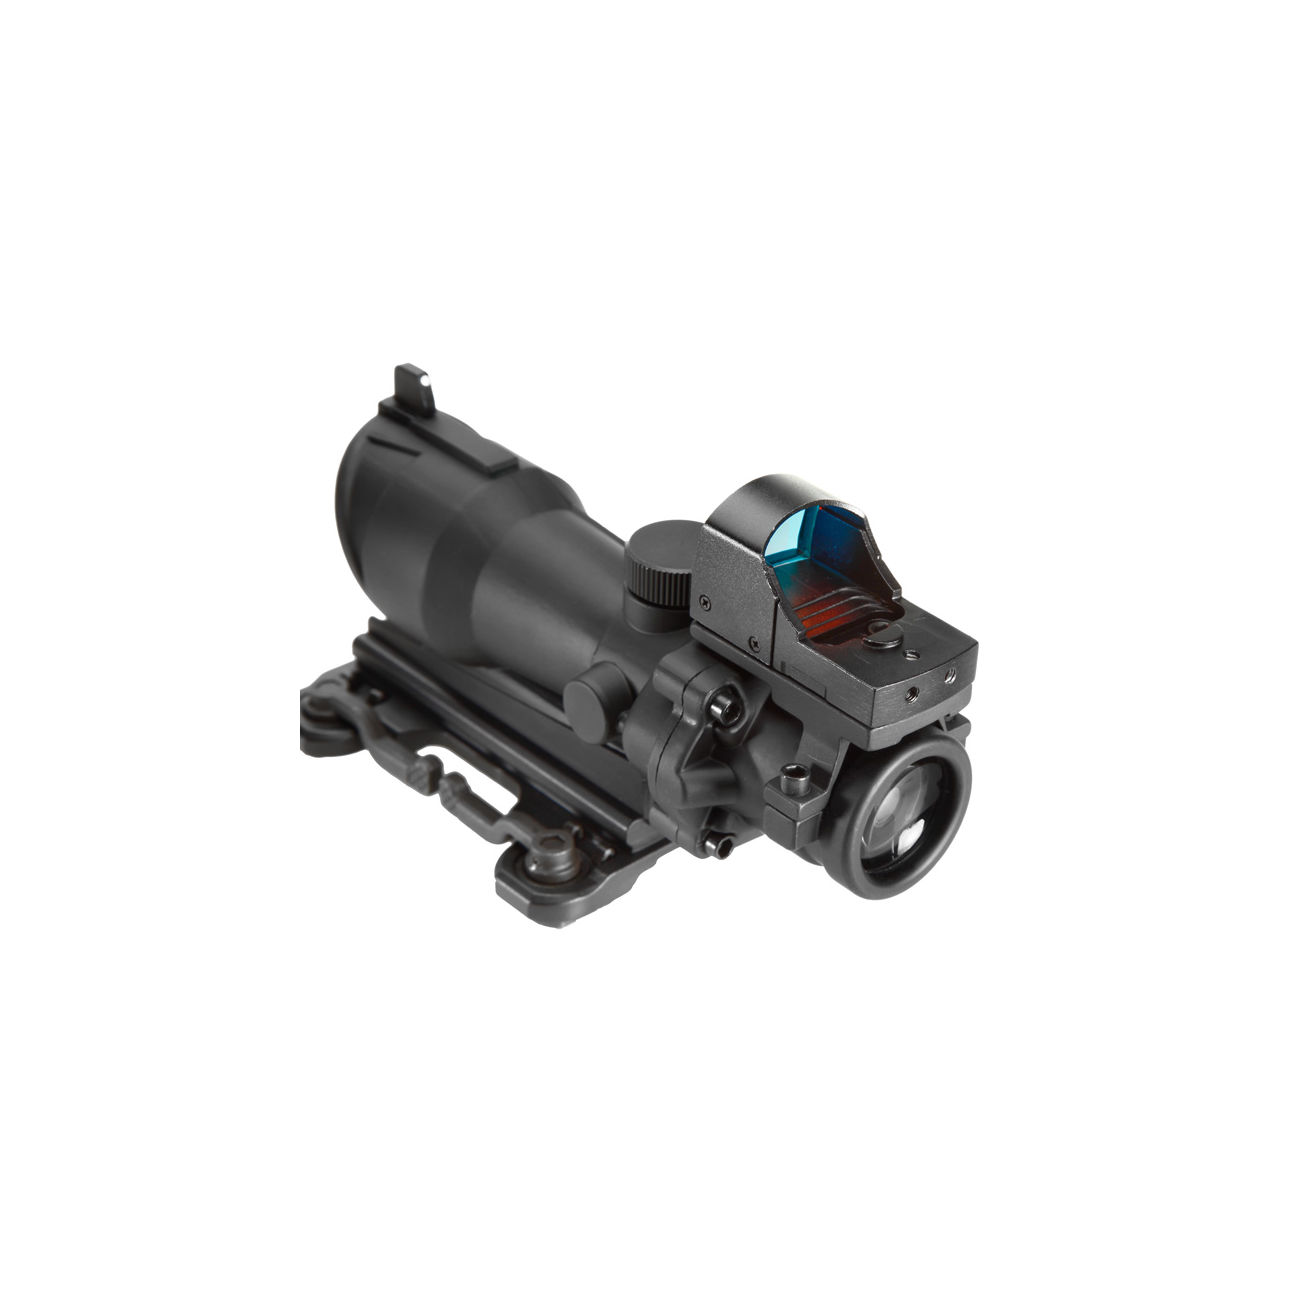 Aim-O TA01 Style Scope 4x32 QD-Mount mit Mini RedDot Visier schwarz 5316-BK 4